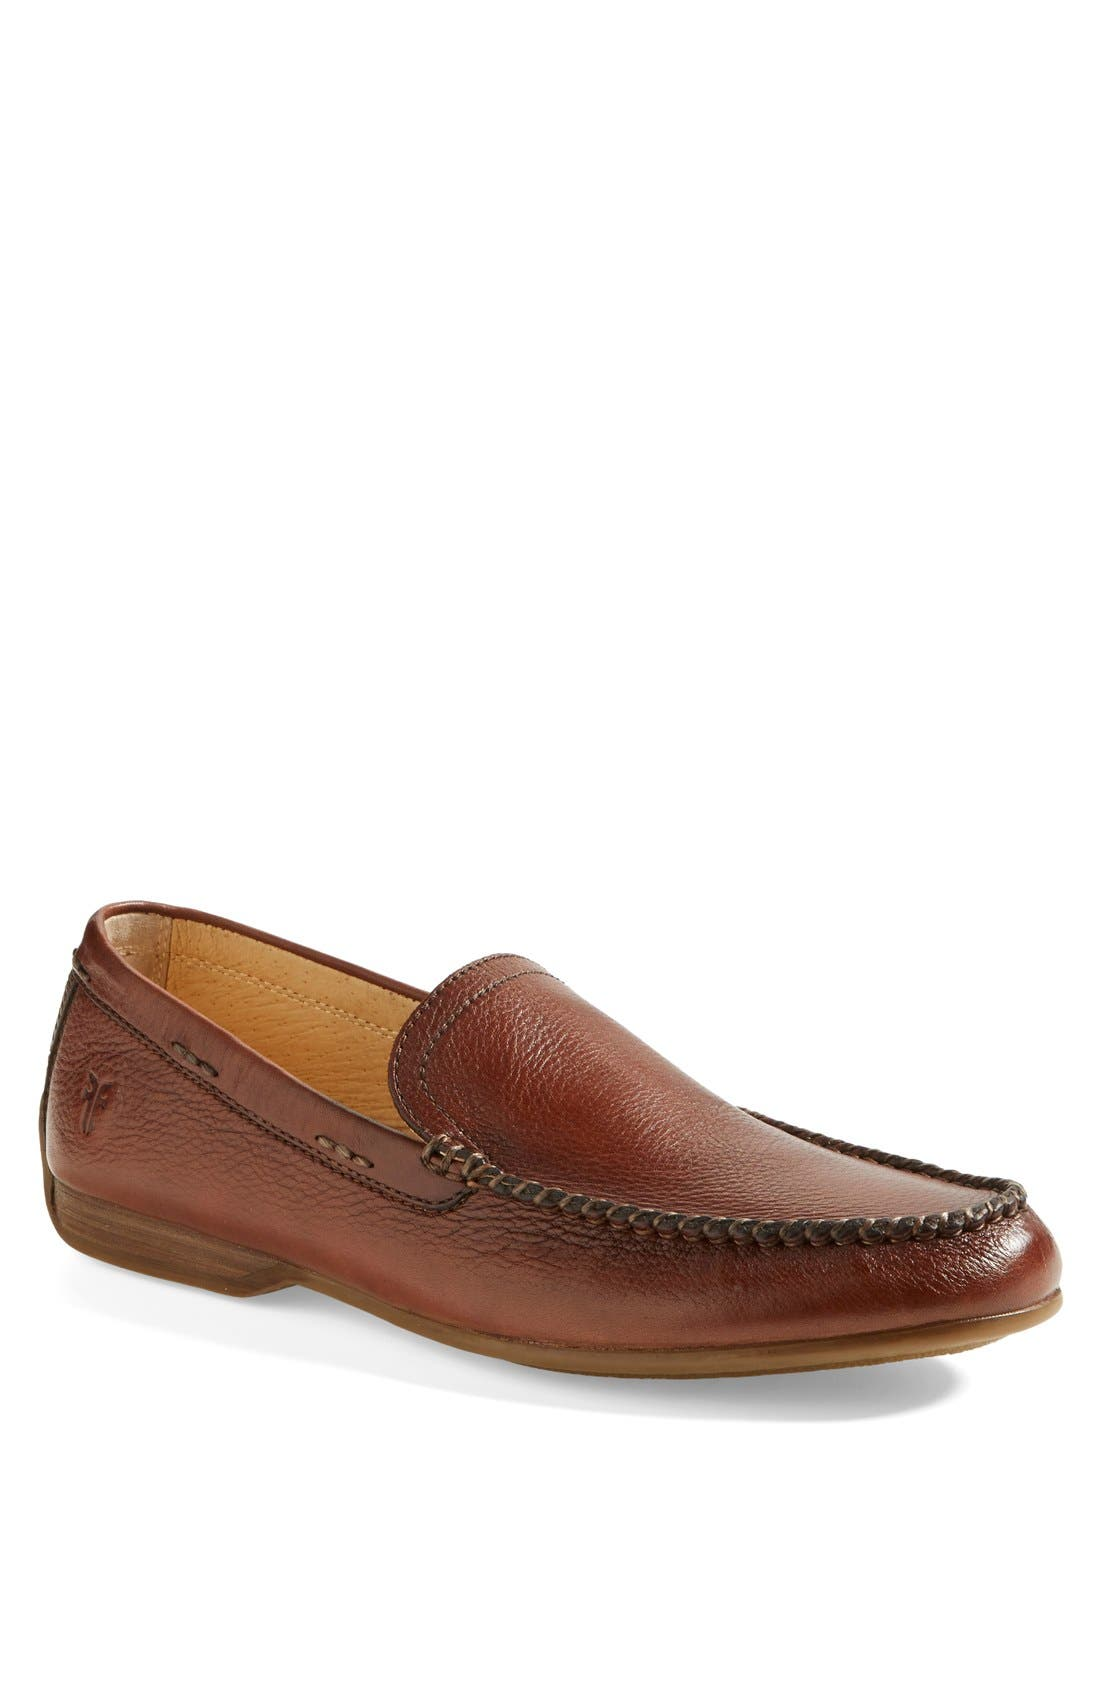 Alternate Image 1 Selected - Frye 'Lewis' Venetian Loafer (Men)